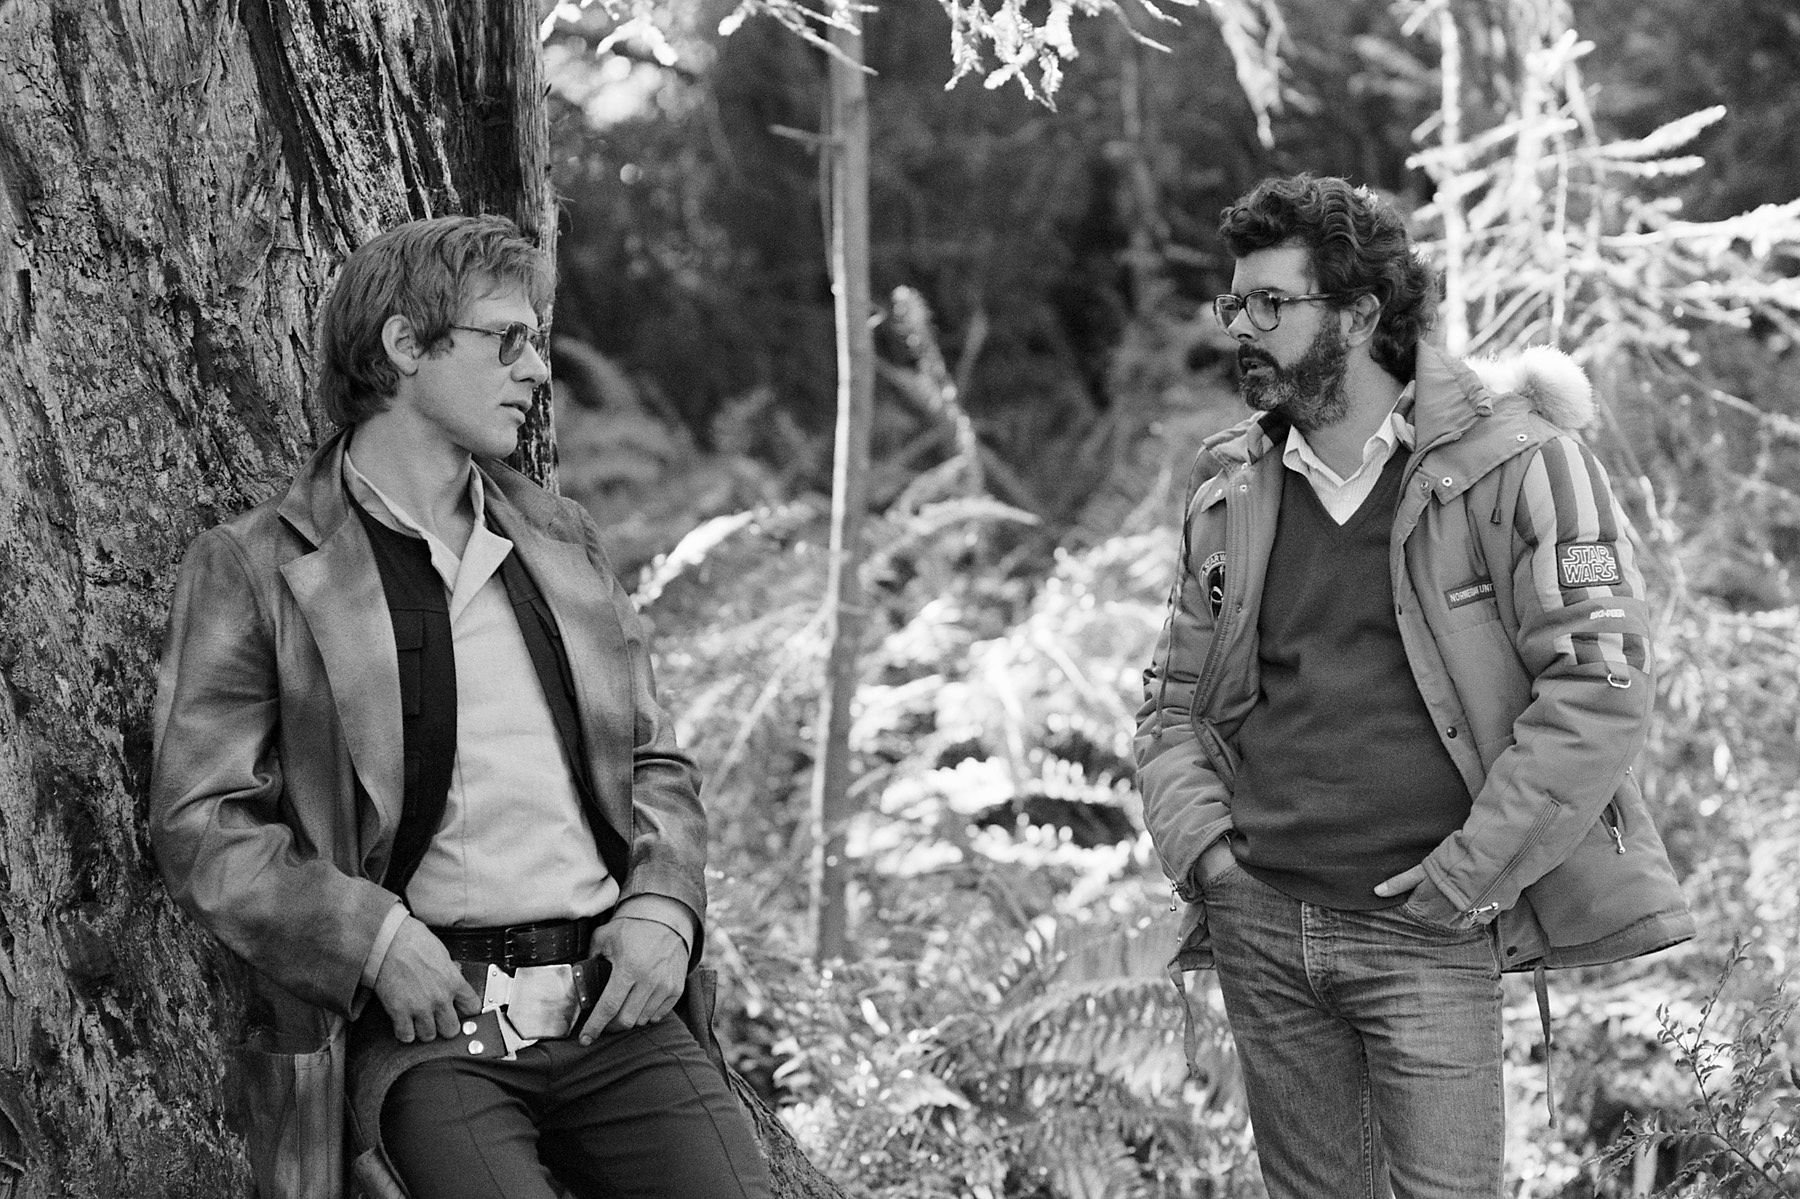 lucas-han-favorite-non-star-wars-thing-george-lucas-did-jpeg-180038